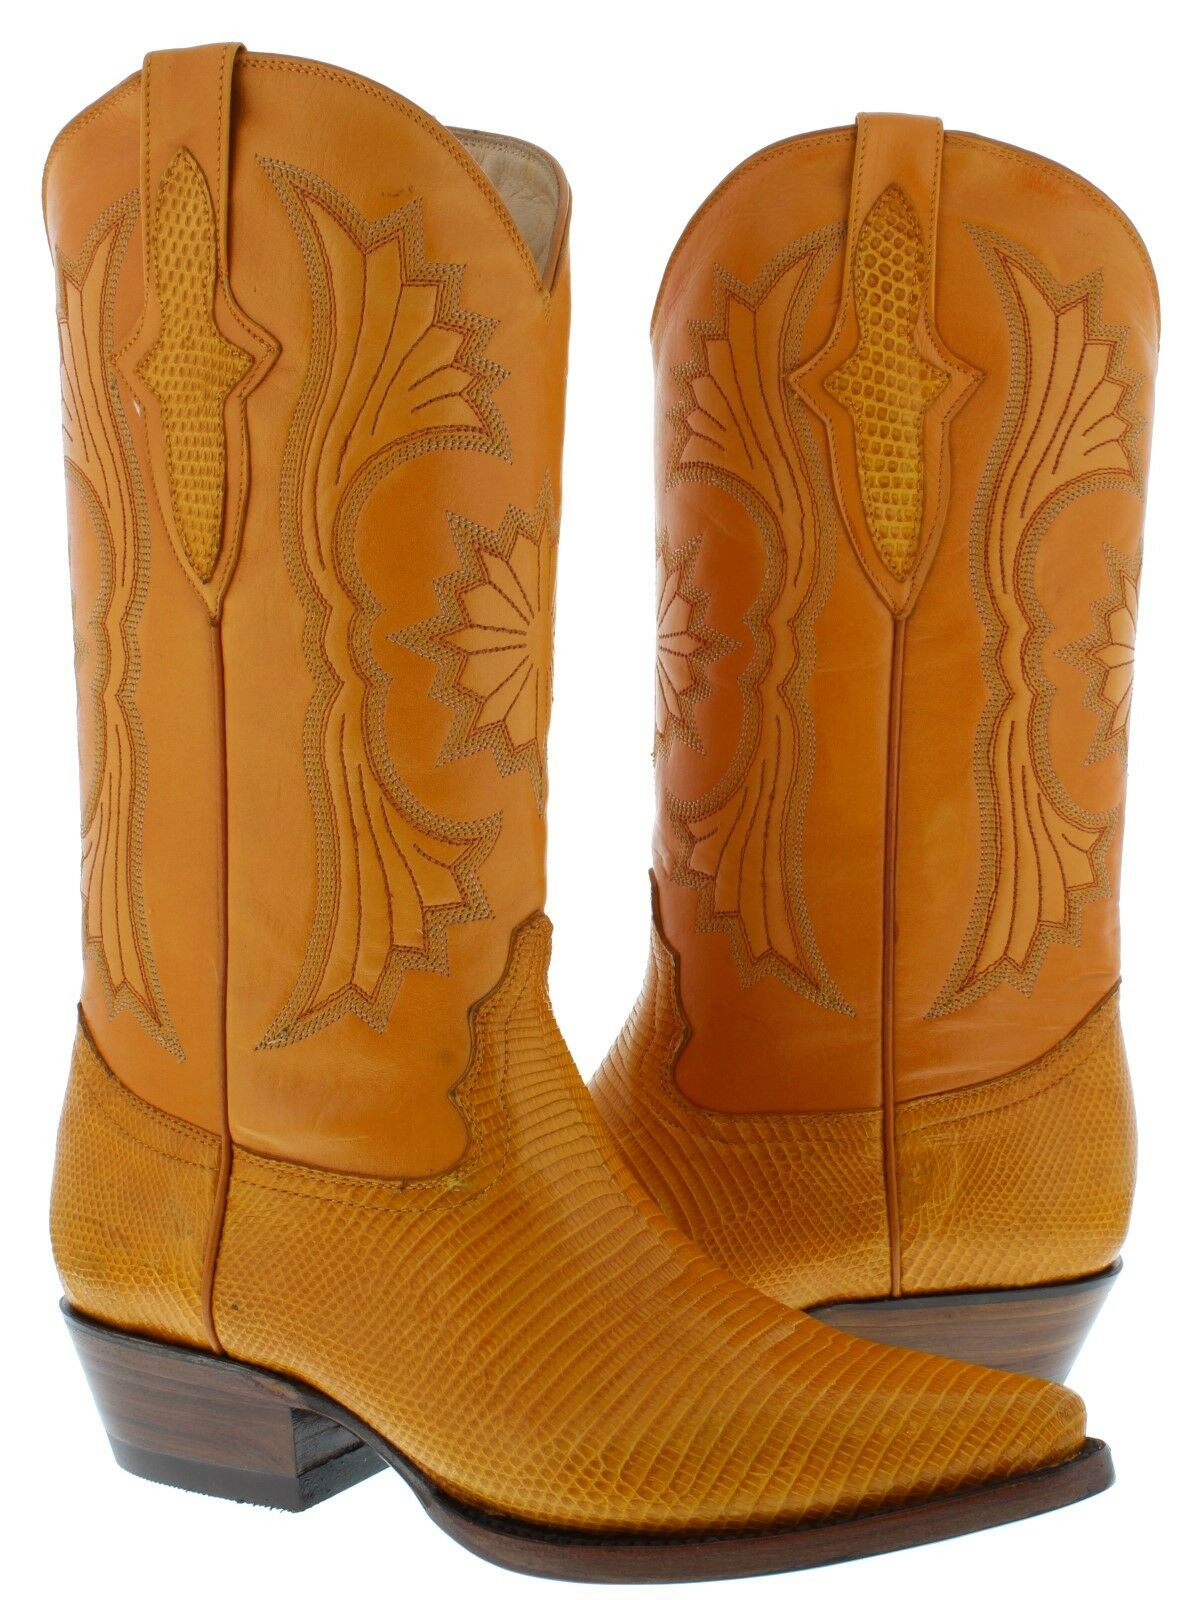 Men's Buttercup Yellow Real Lizard Skin Leather Cowboy Boots